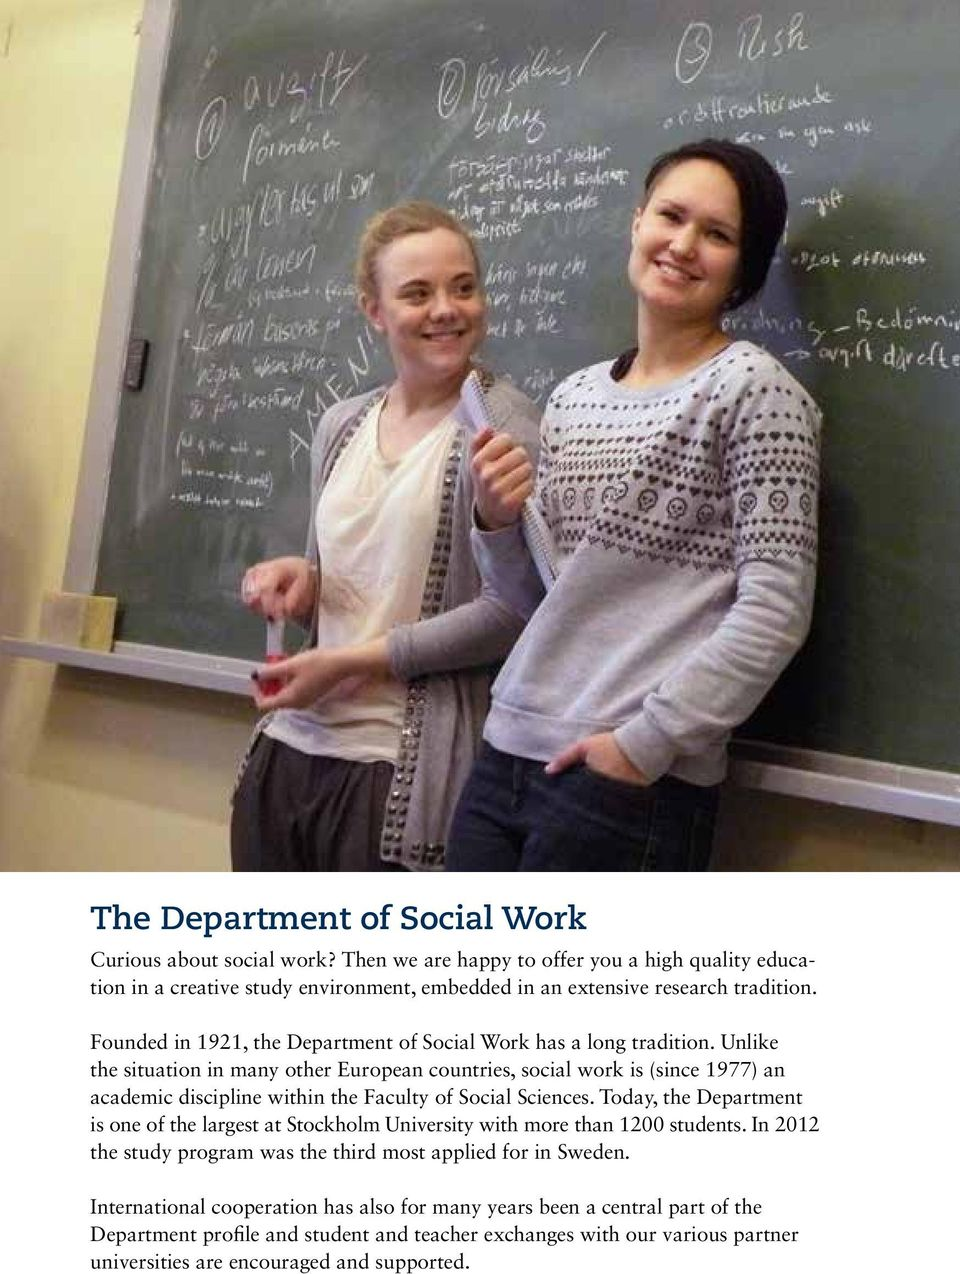 Founded in 1921, the Department of Social Work has a long tradition.